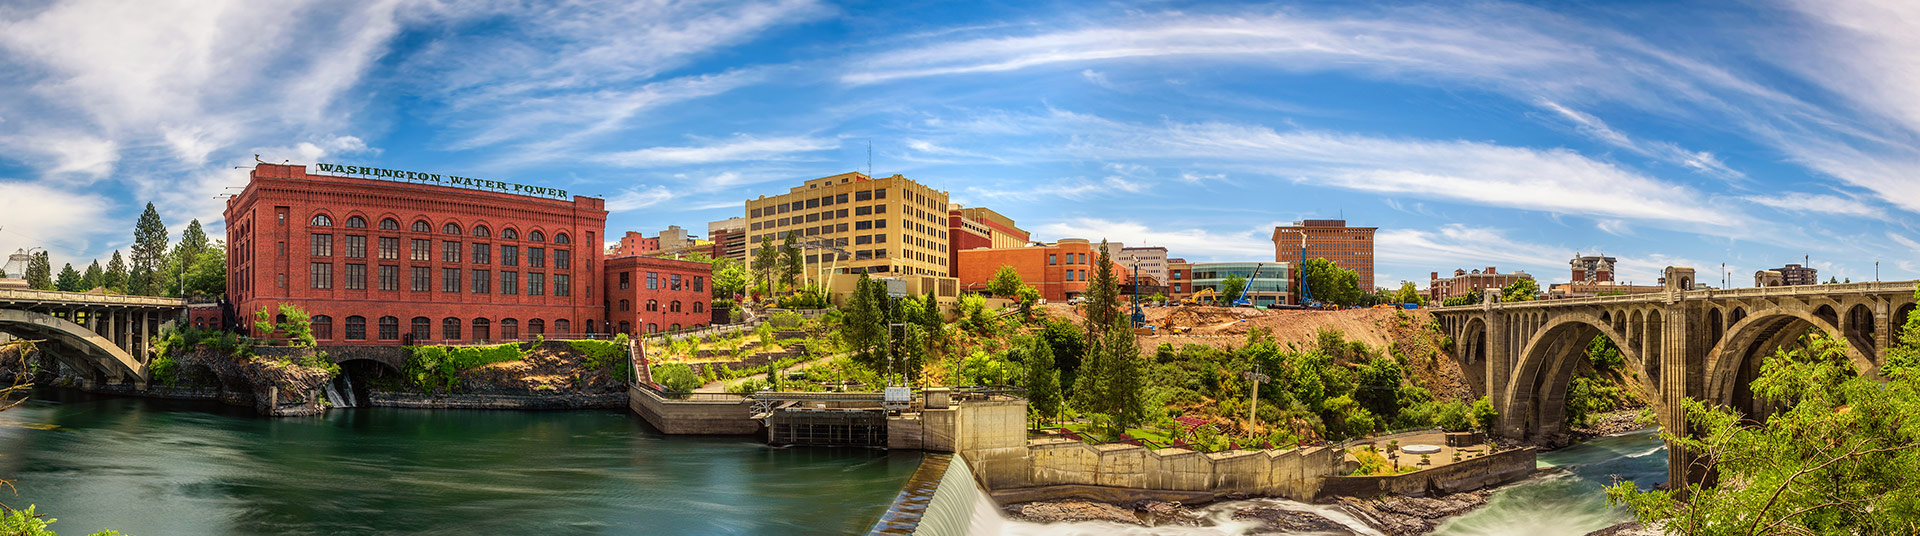 hero-image-City of Spokane and river